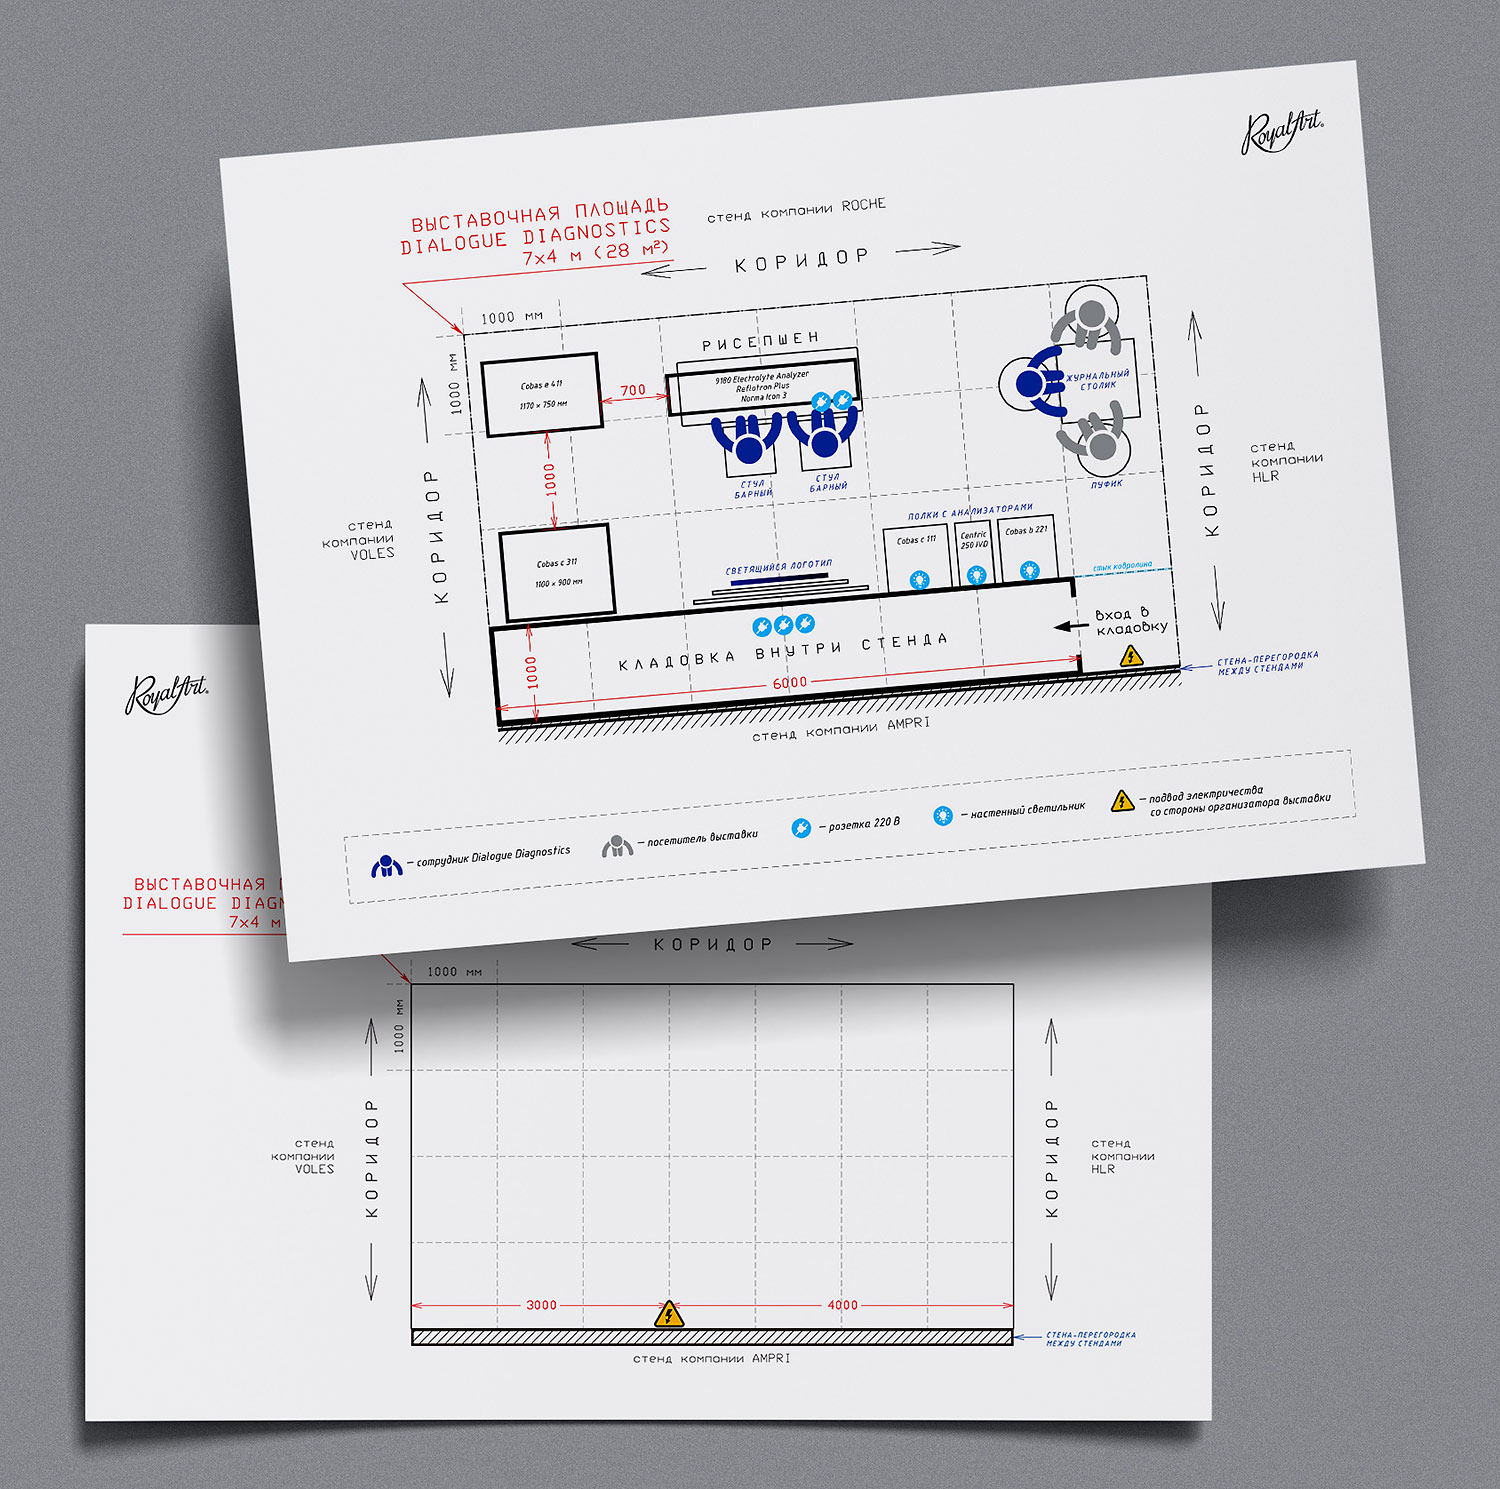 Developing the design of an exhibition stand for a medical exhibition.